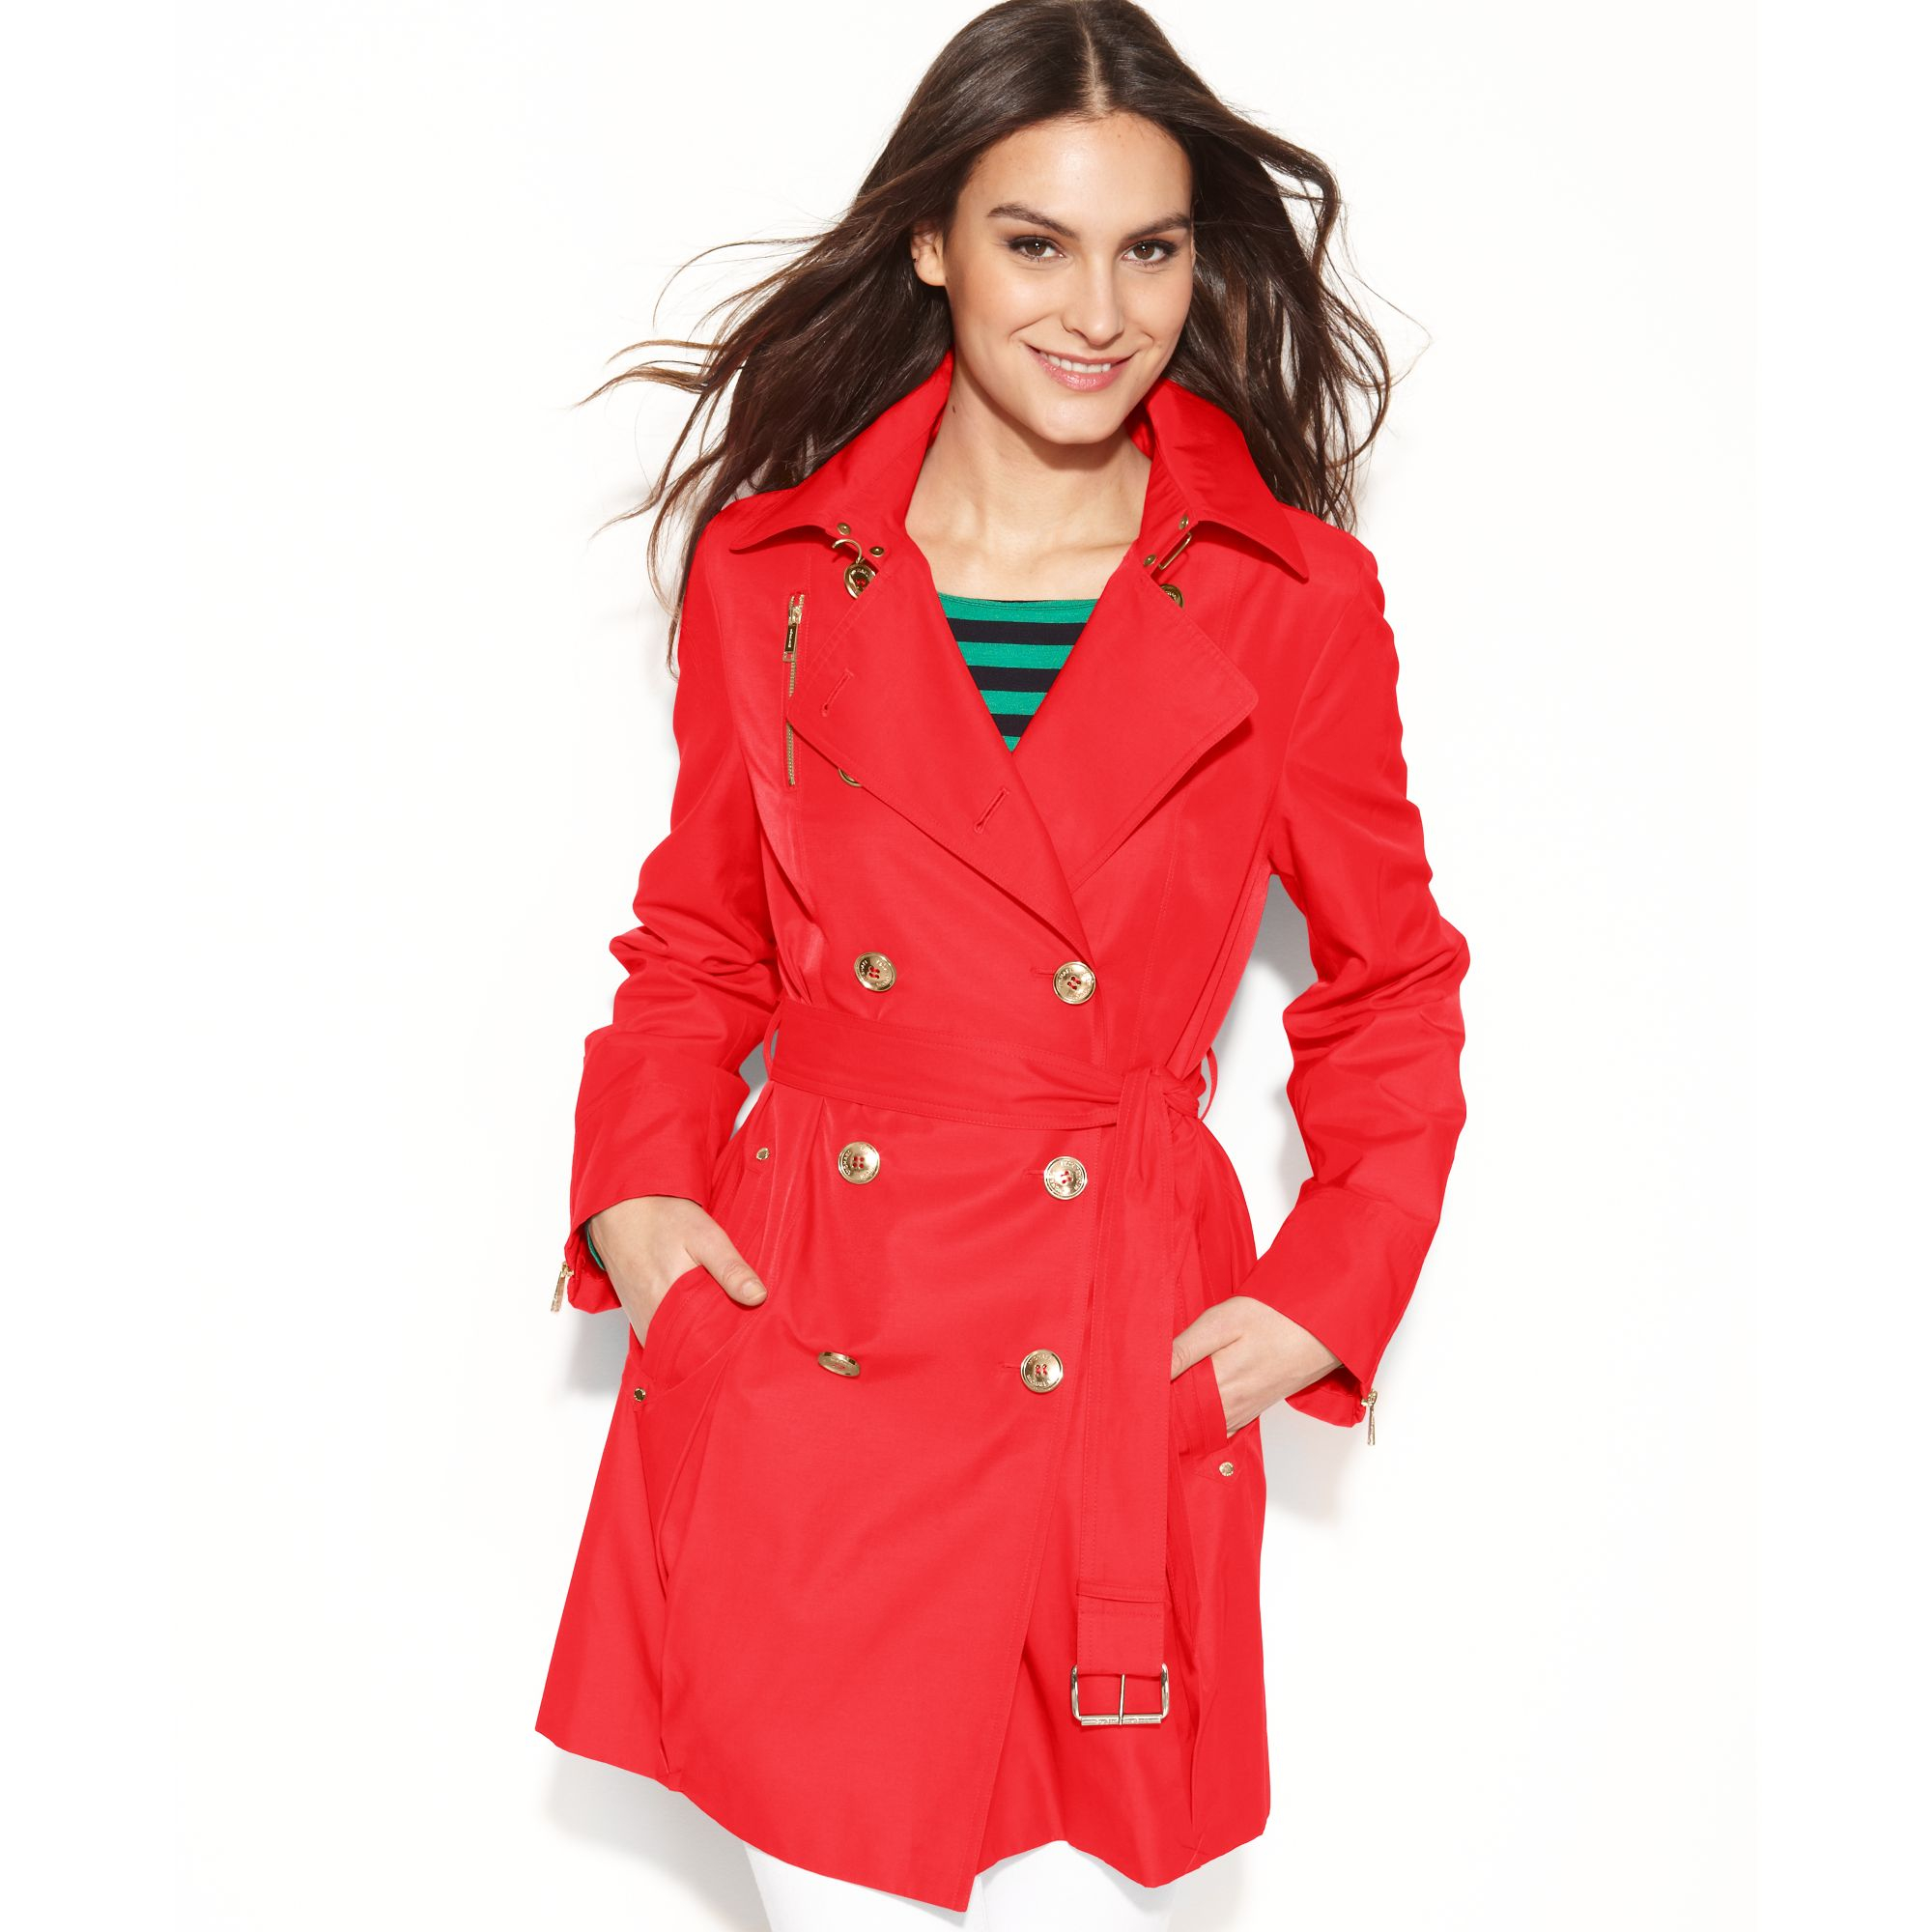 Michael kors Double Breasted Belted Trench Coat in Red   Lyst